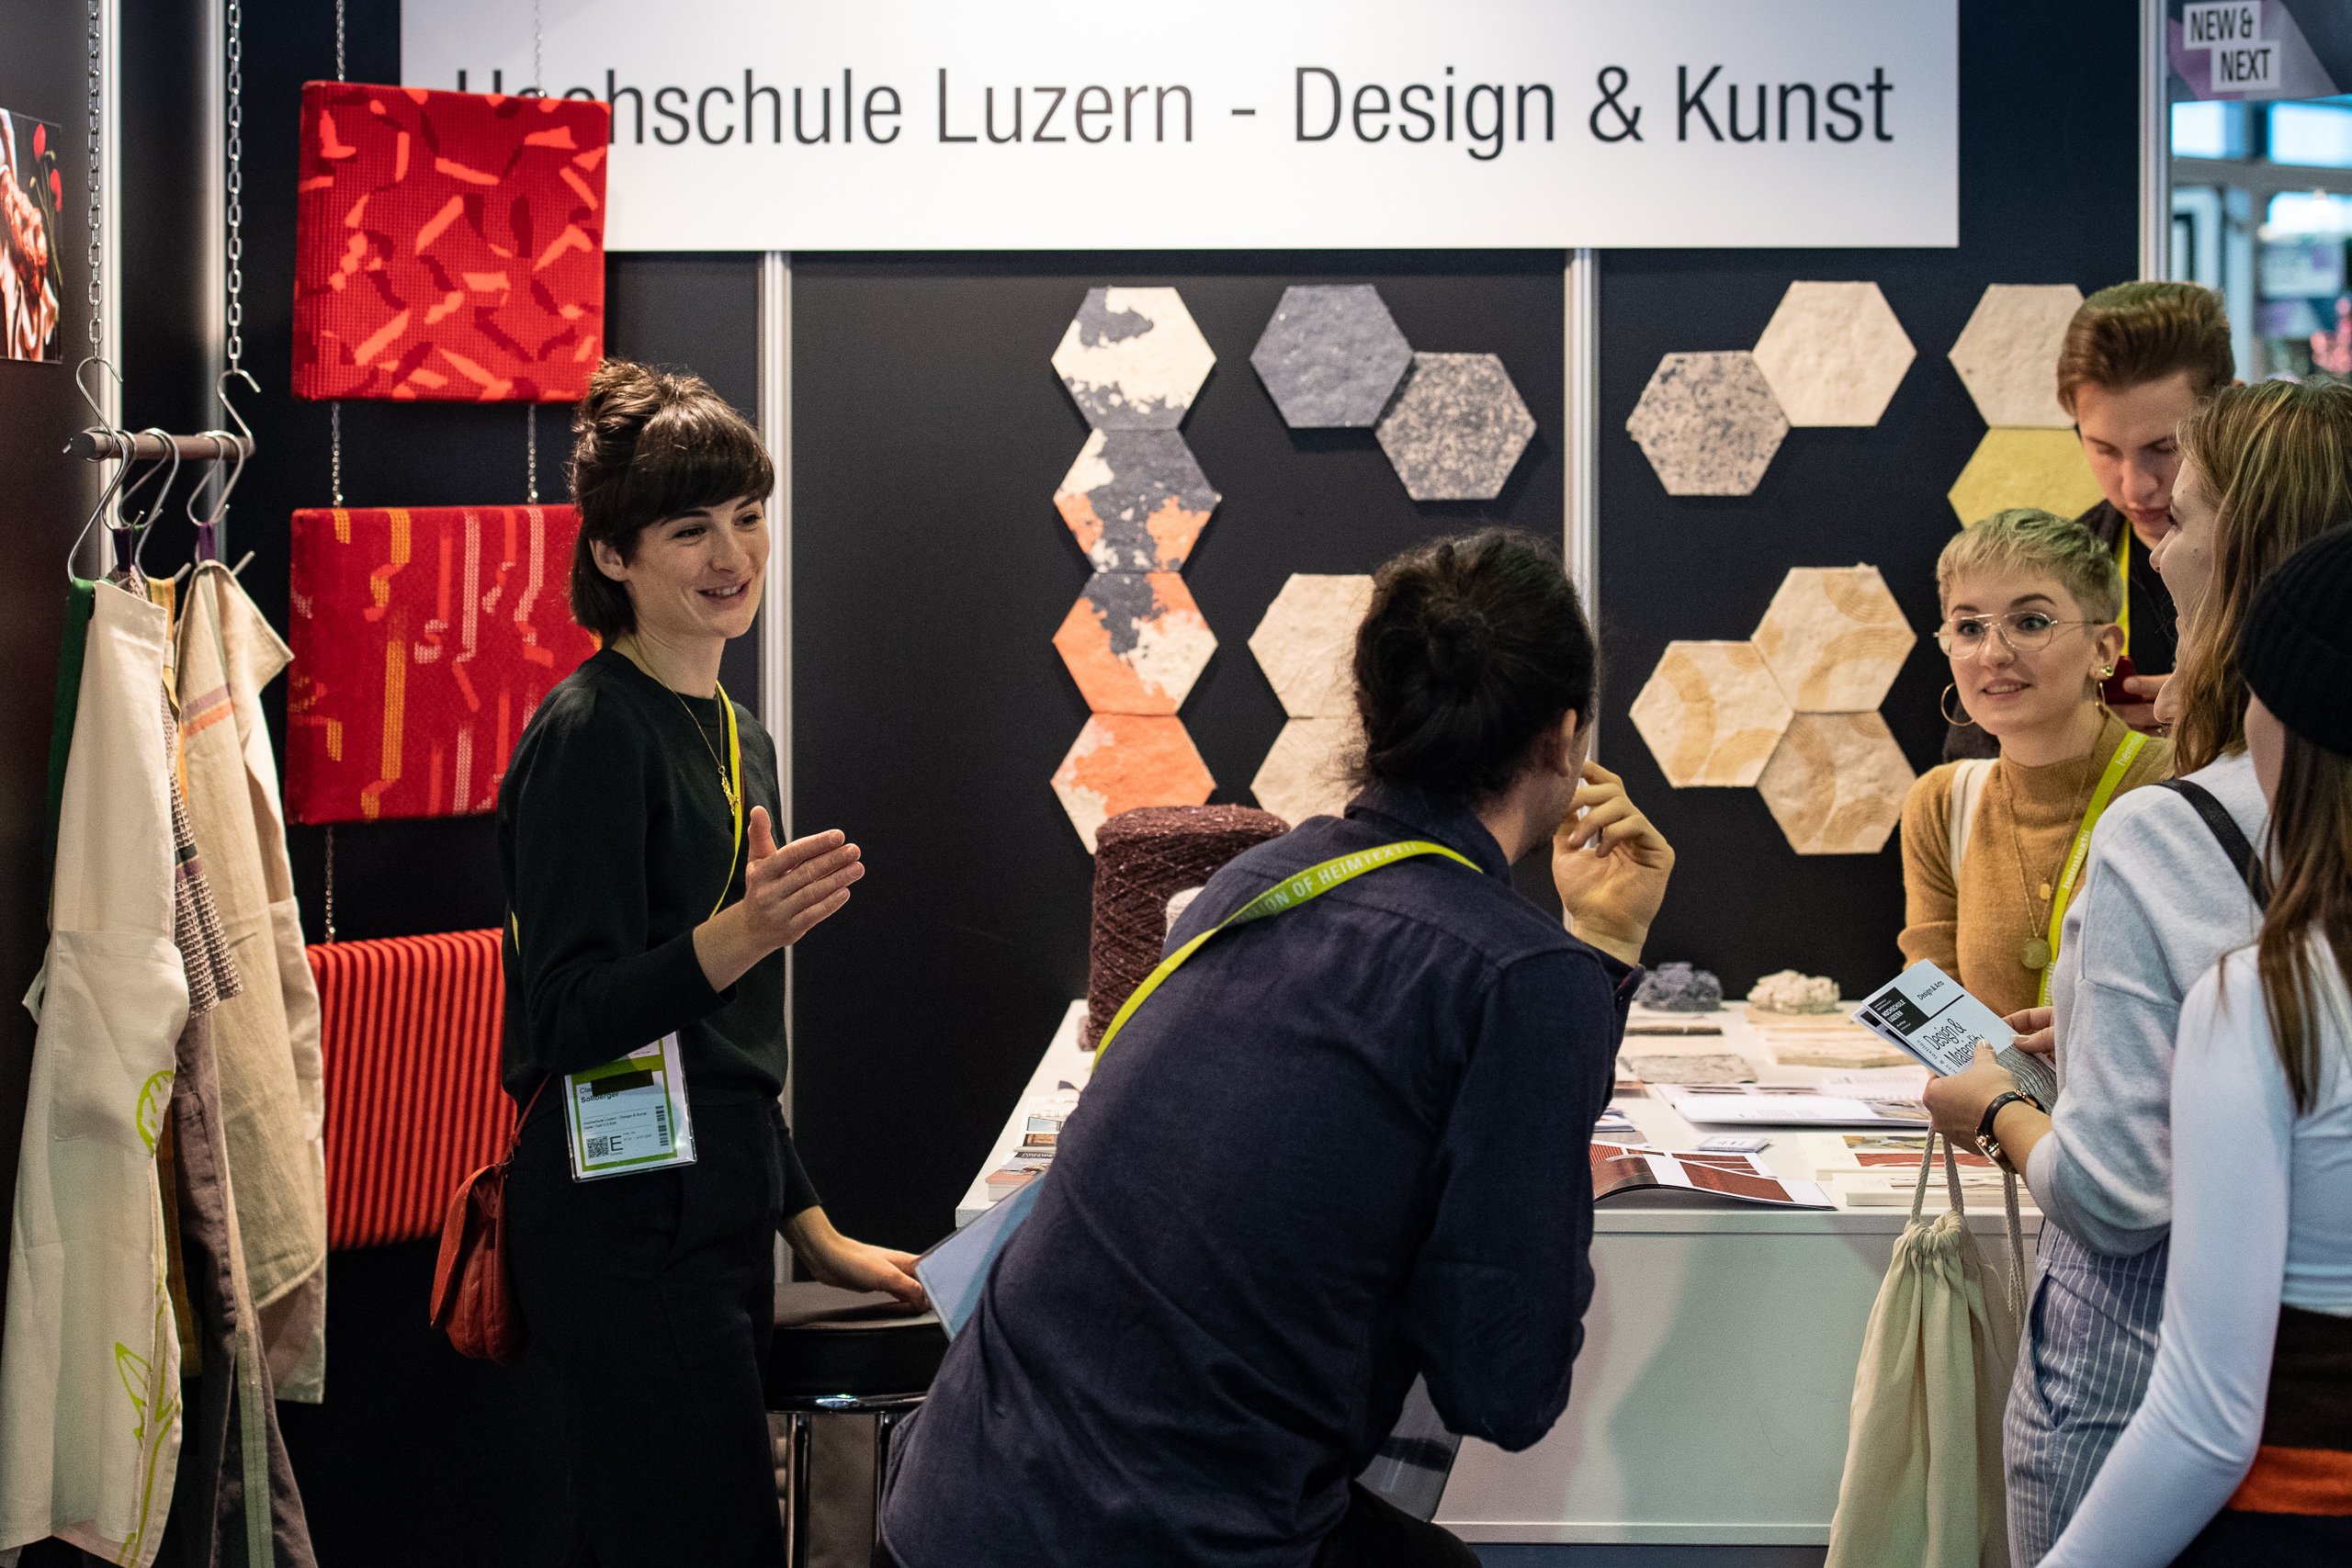 New & Next University Competition / Hochschule Luzern Design & Kunst